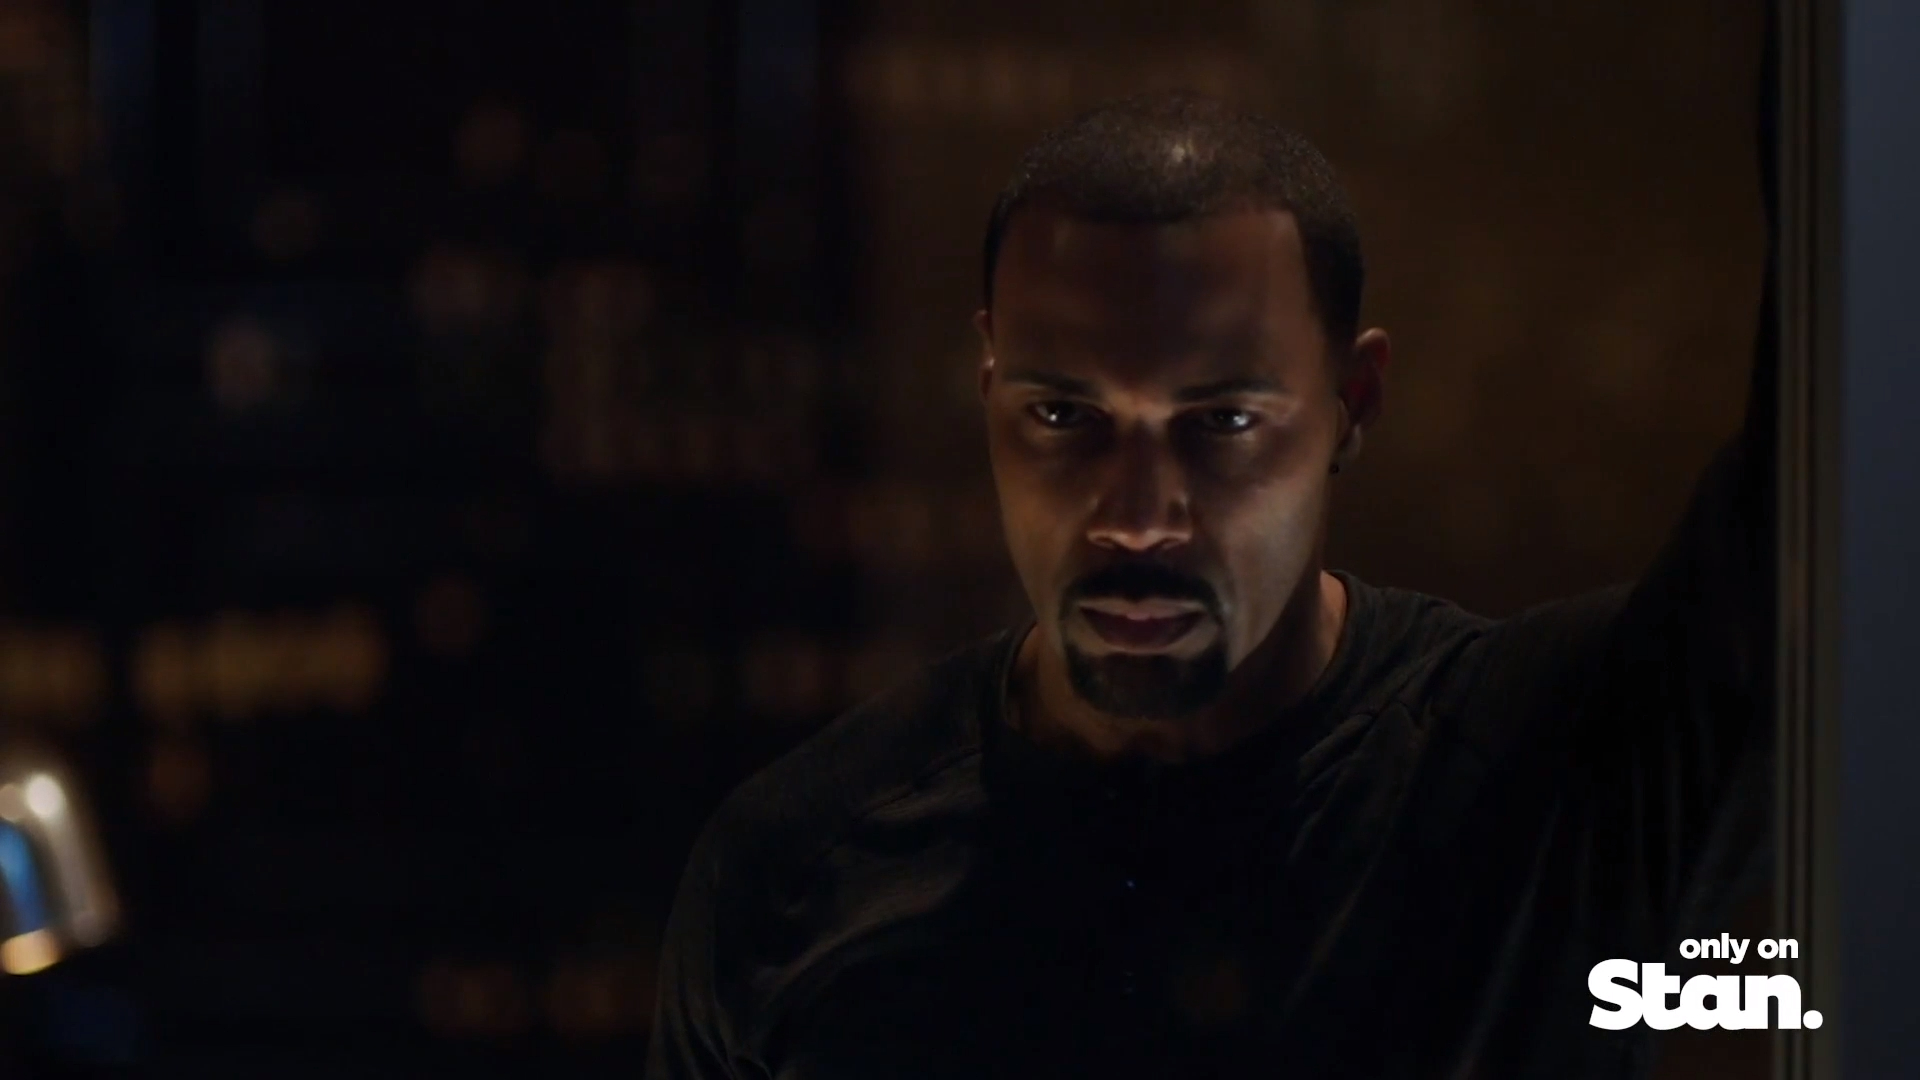 'Power' Season 5 trailer – only on Stan